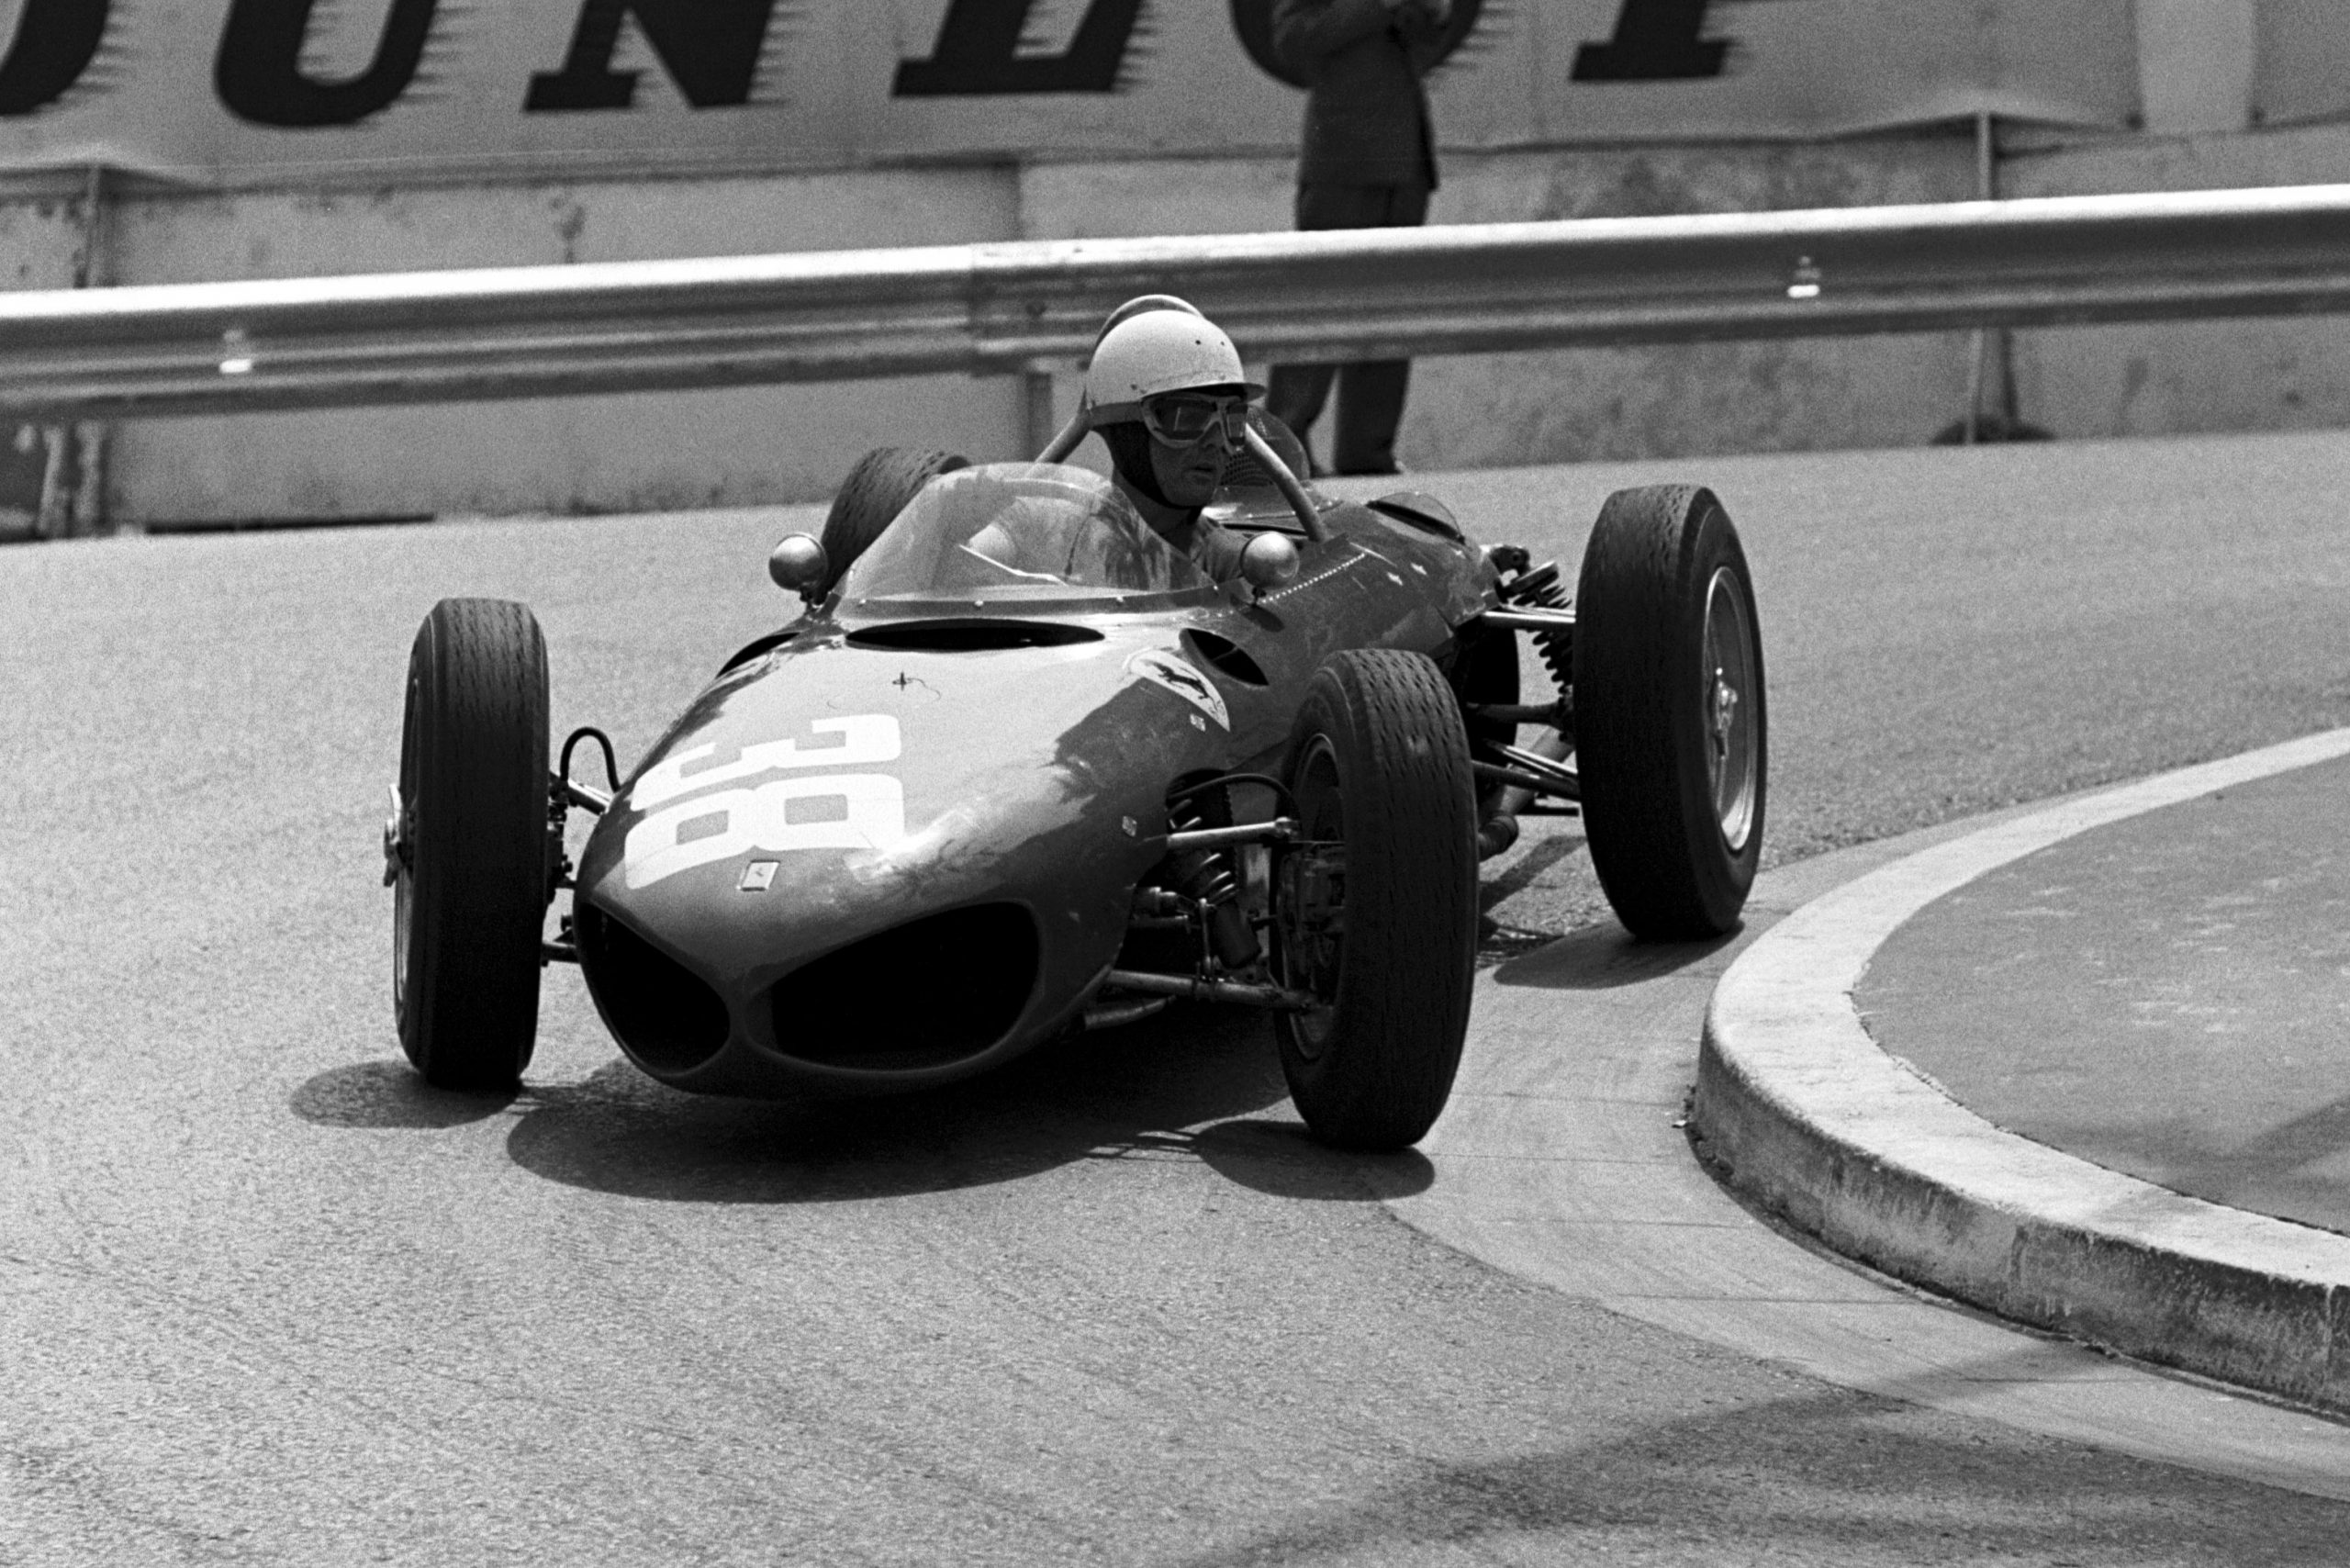 Phil Hill at the whee of his Ferrari 156.